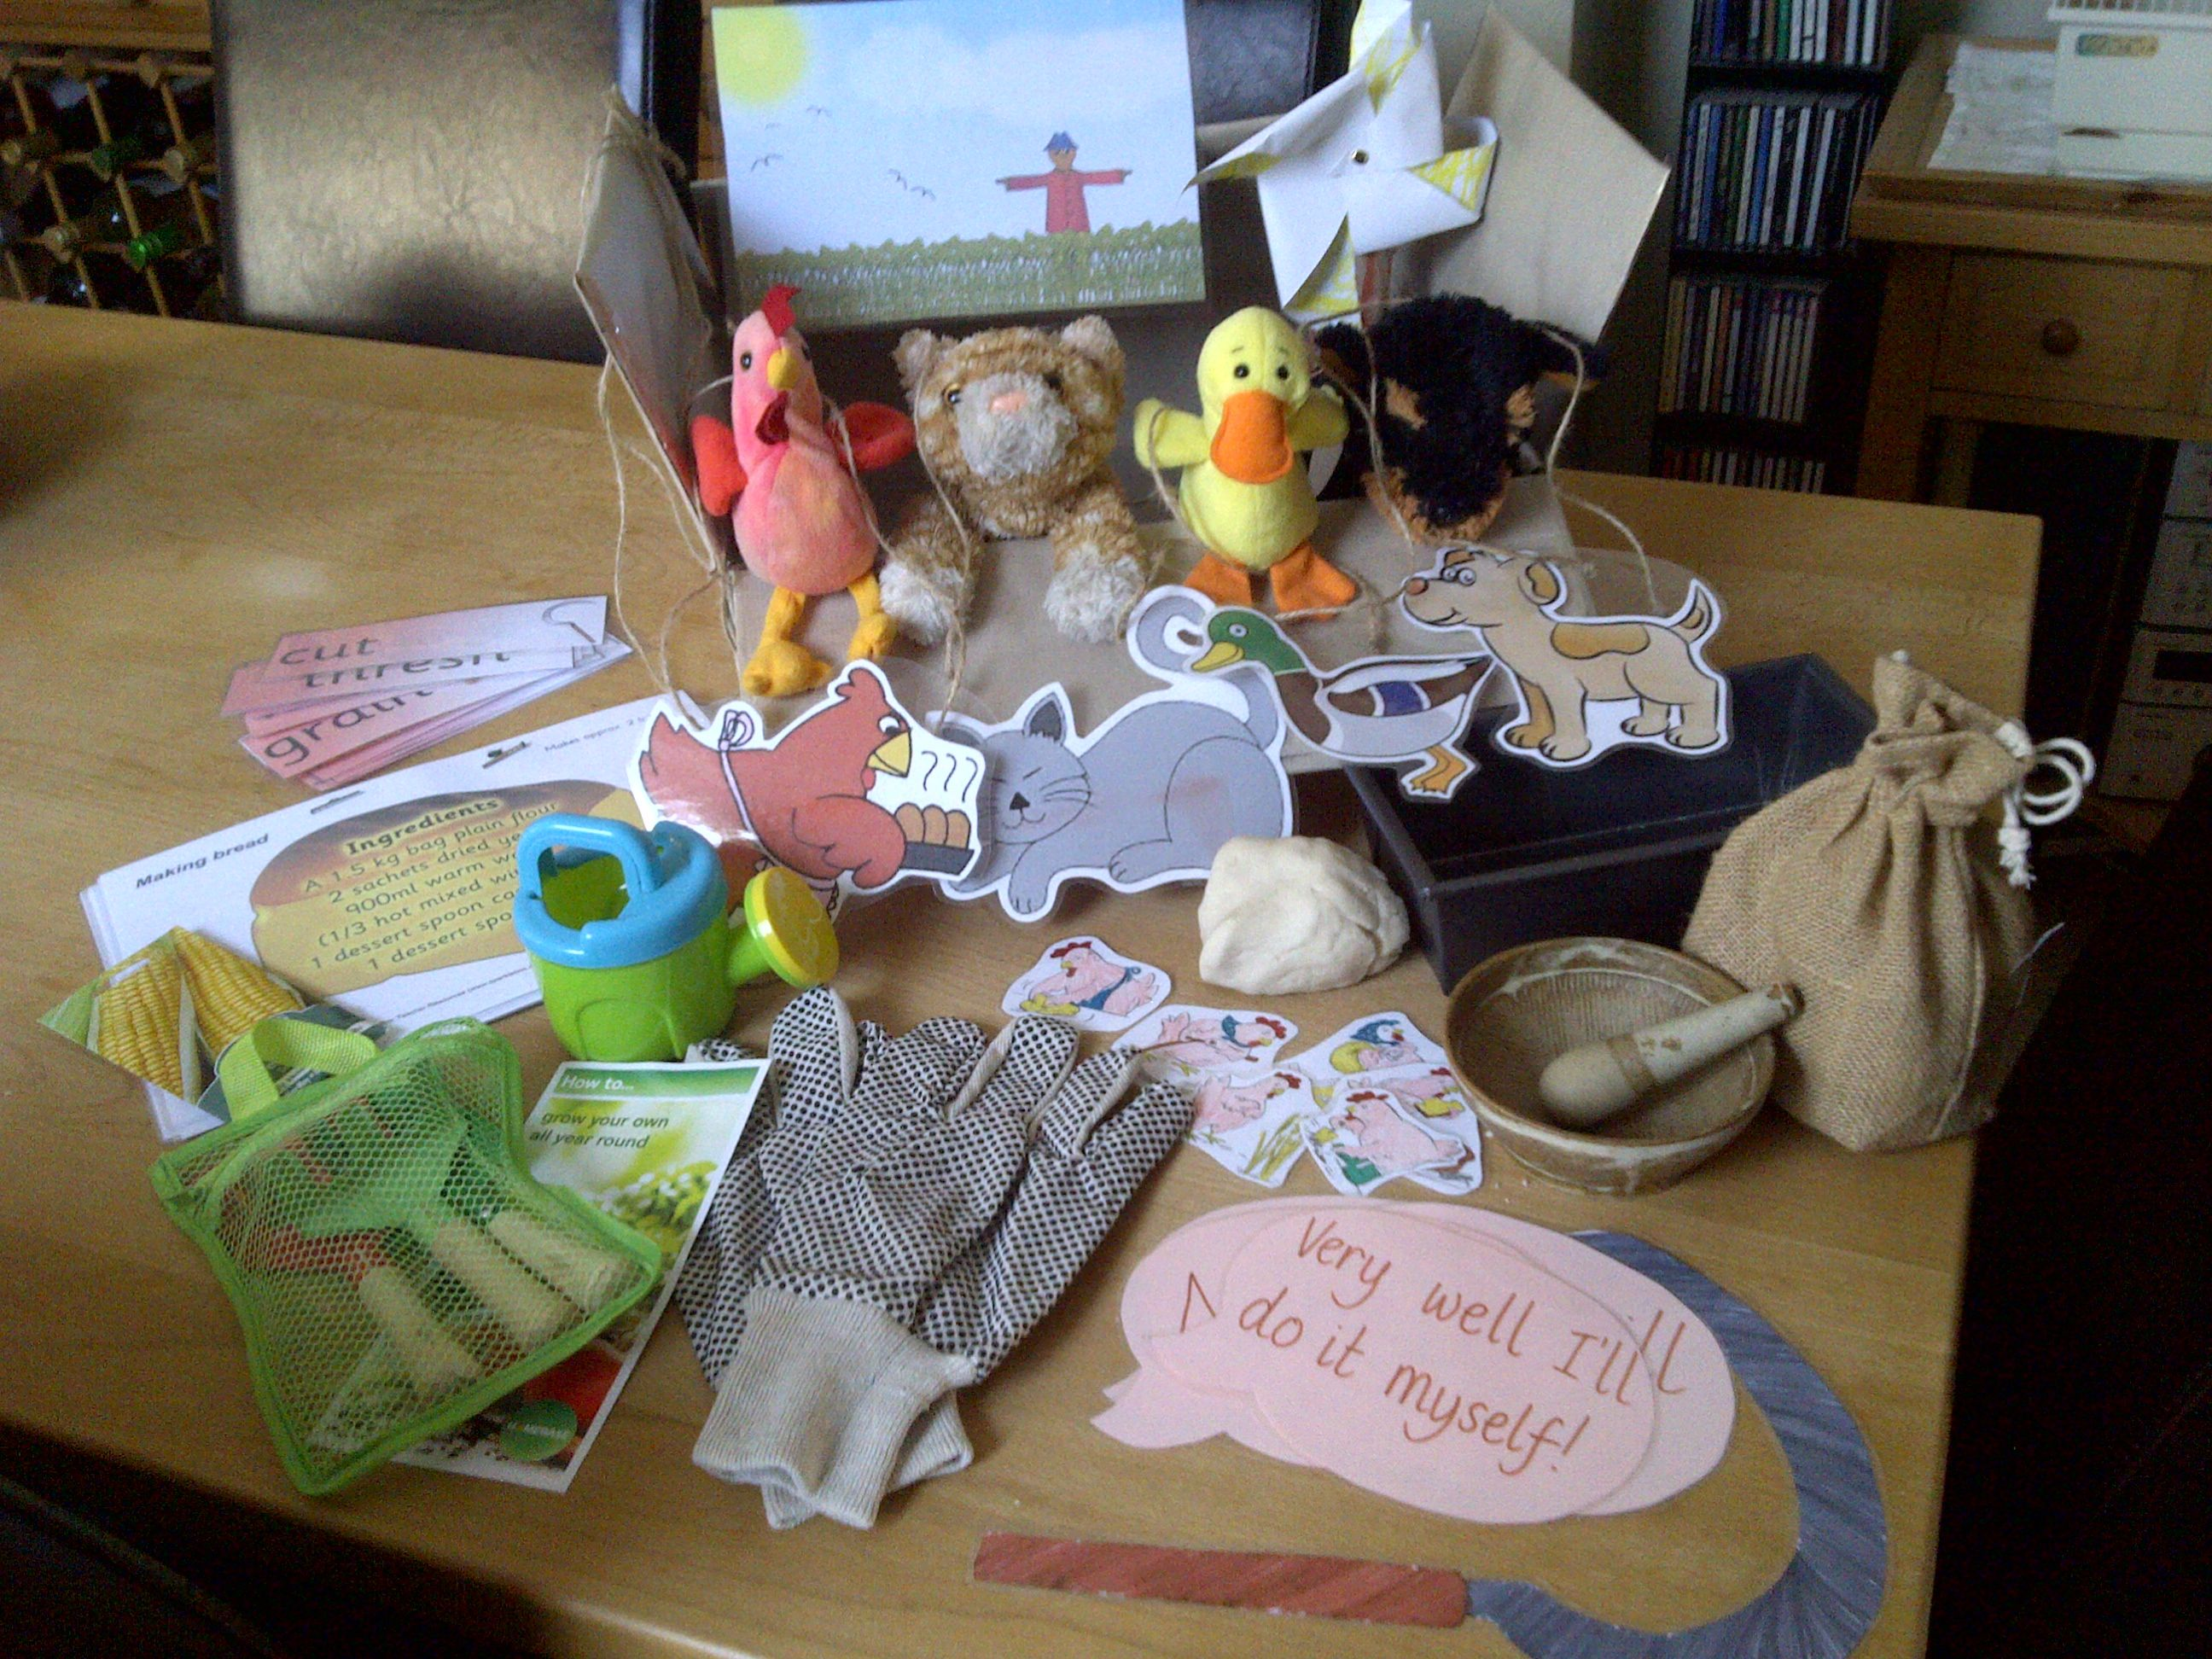 The Little Red Hen Story Box Props To Retell The Story Recipe To Make Bread Story Necklaces